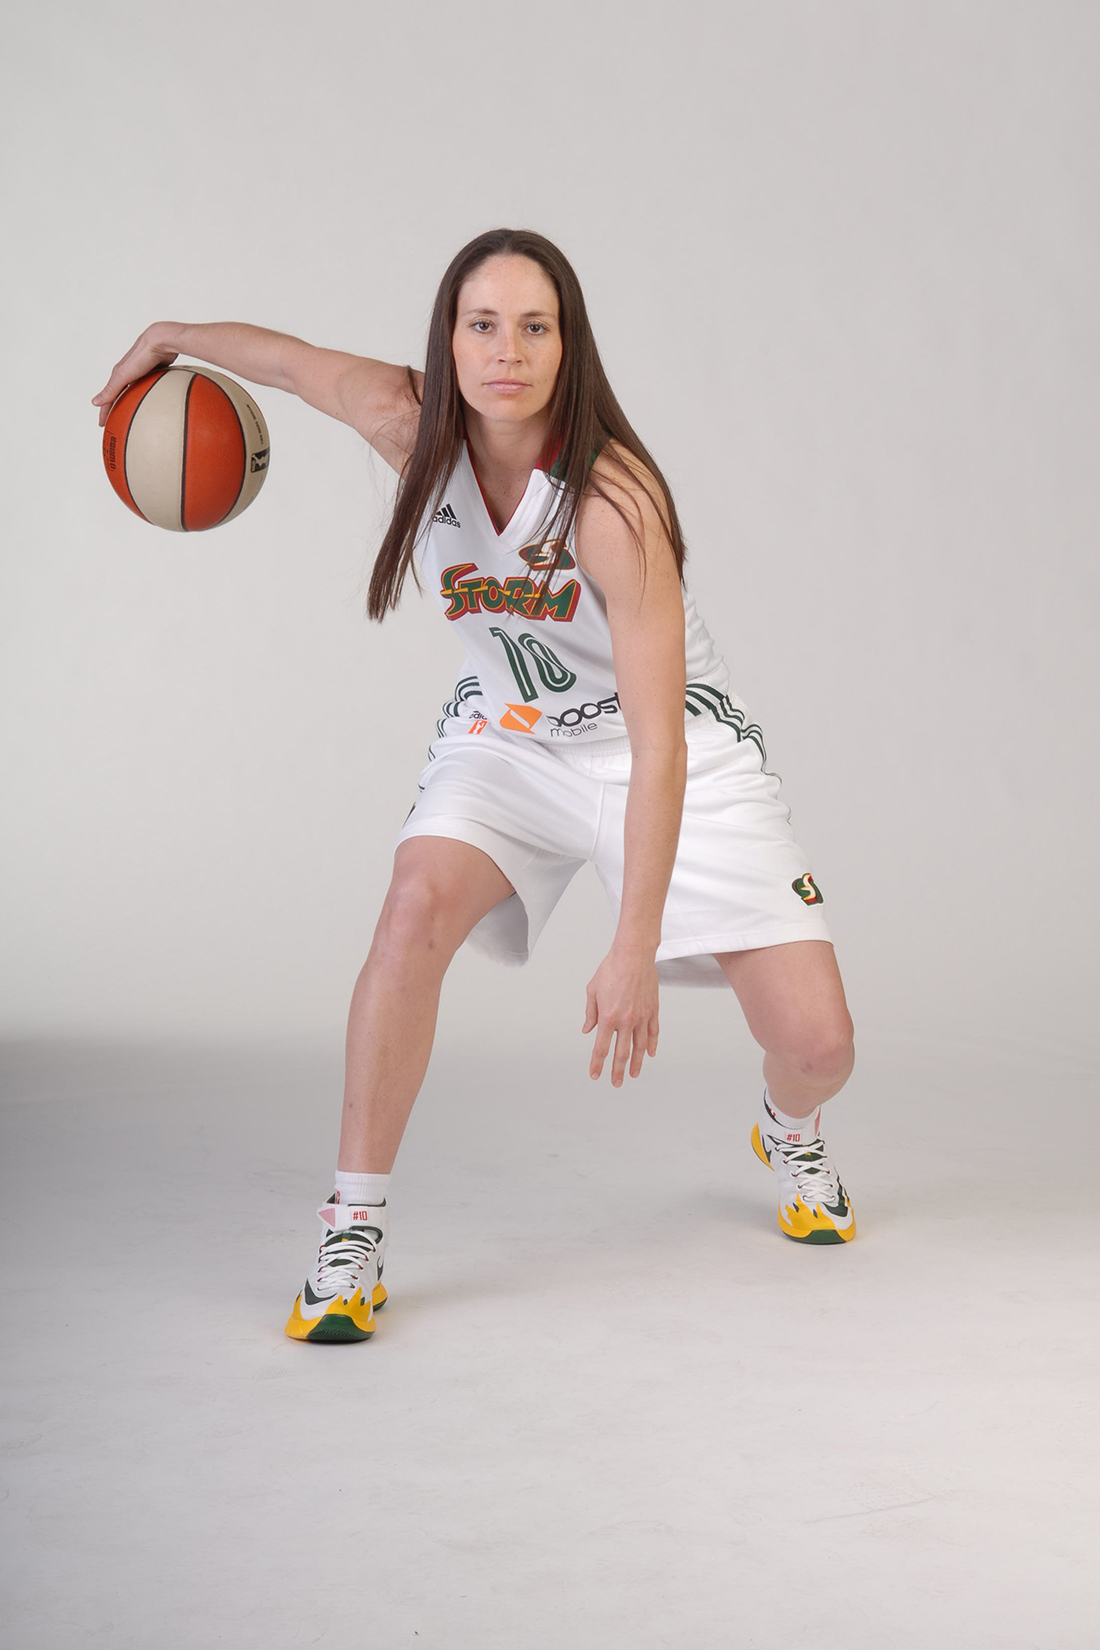 Sue Bird Copyright 2014 NBAE (Photo by Terrence Vaccaro/NBAE via Getty Images